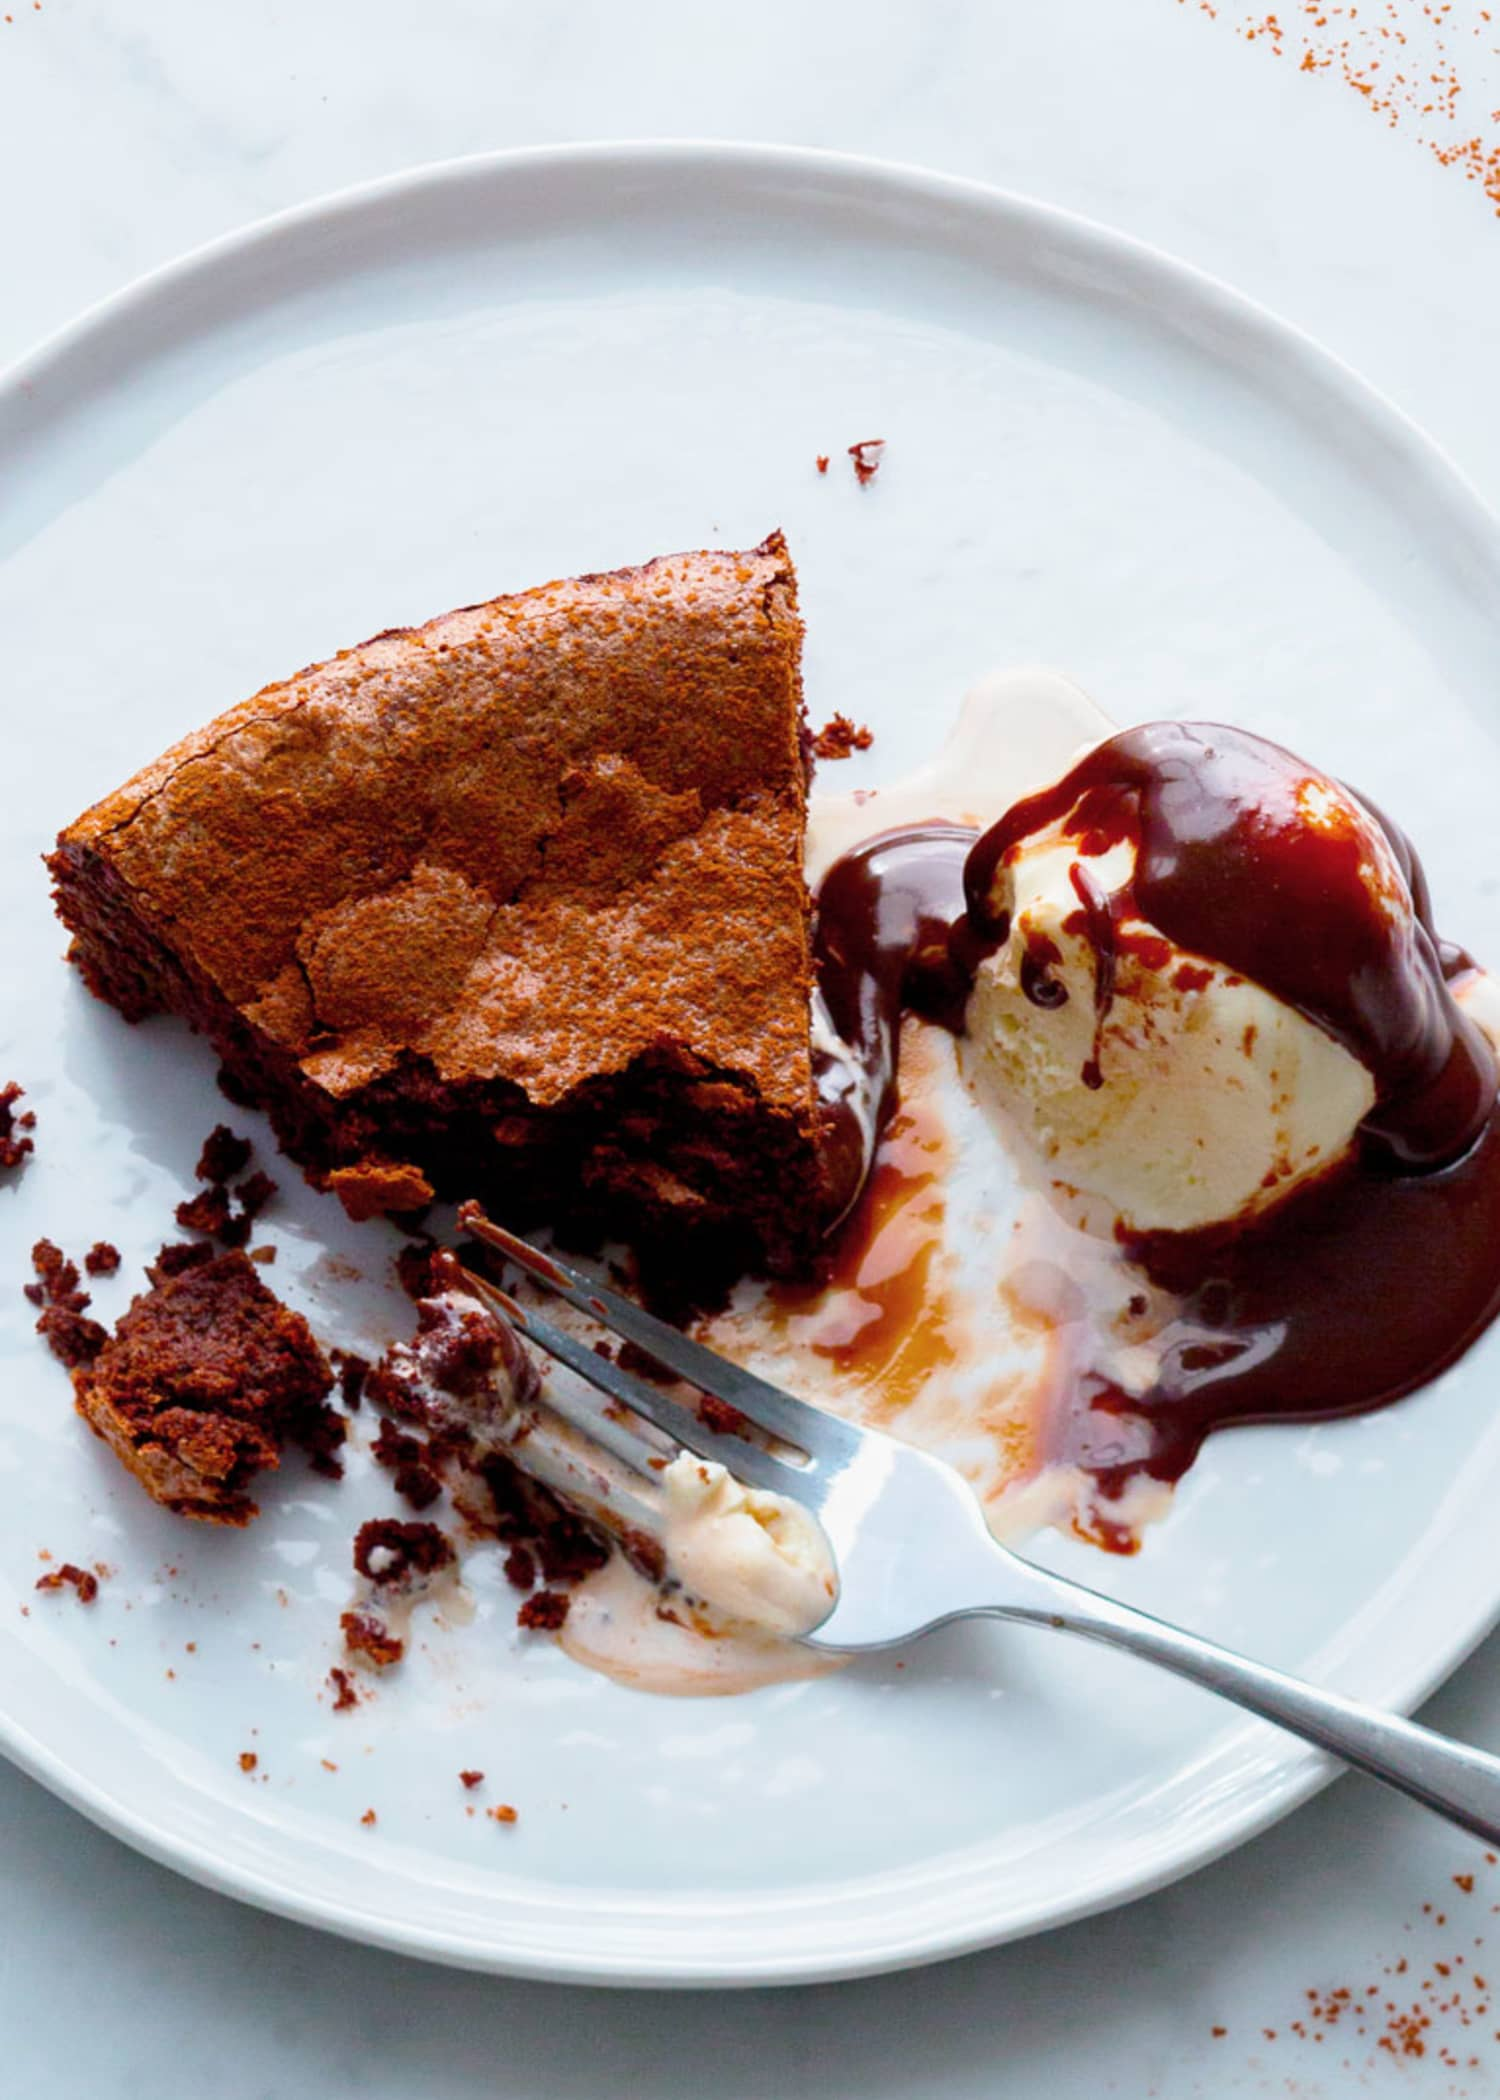 50+ of the Most Romantic Chocolate Recipes